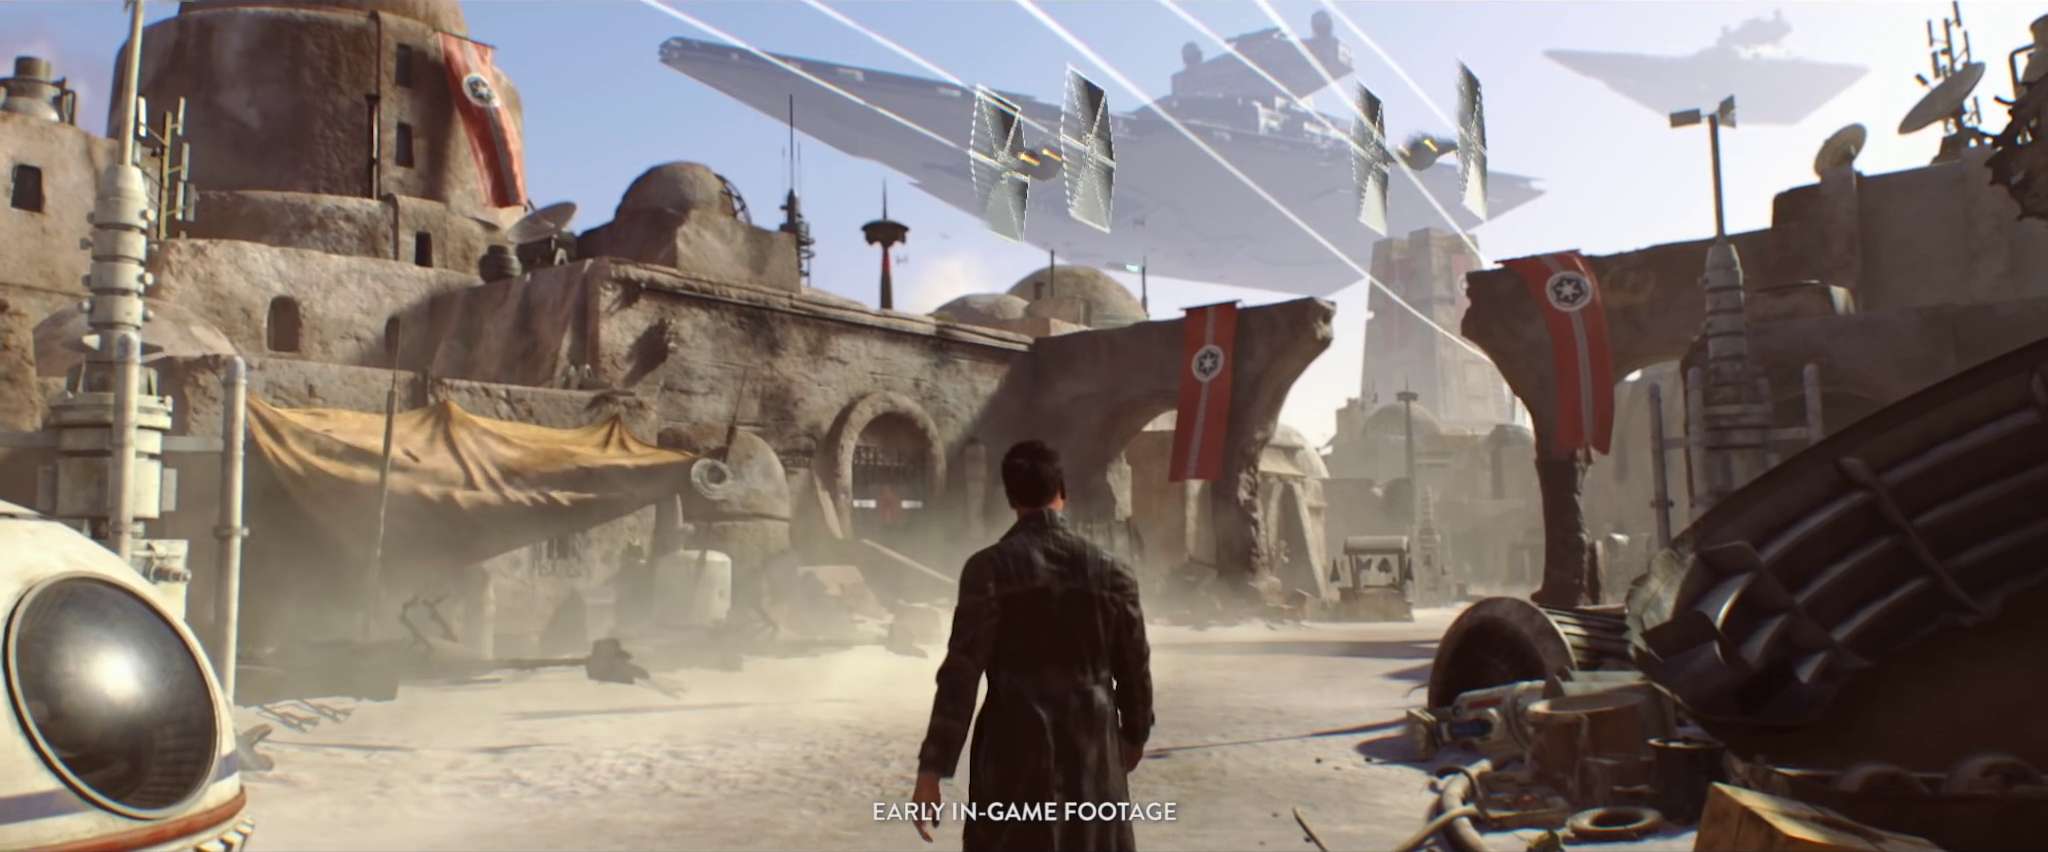 Visceral Games Star Wars project - Imperial-occupied town from early in-game footage